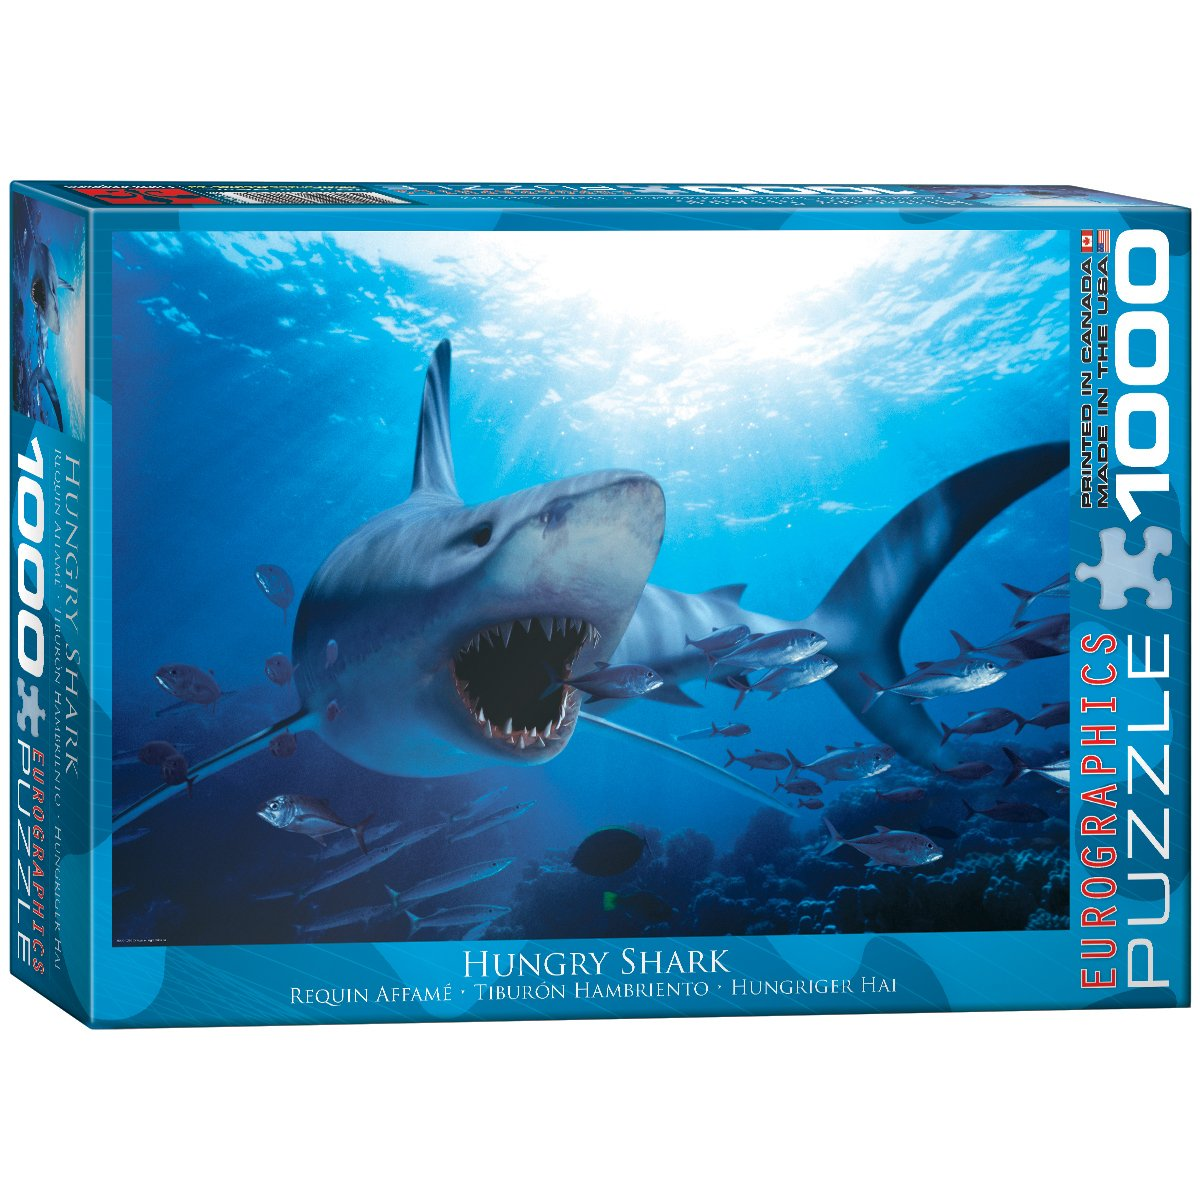 EuroGraphics Hungry Shark 1000 Piece Puzzle